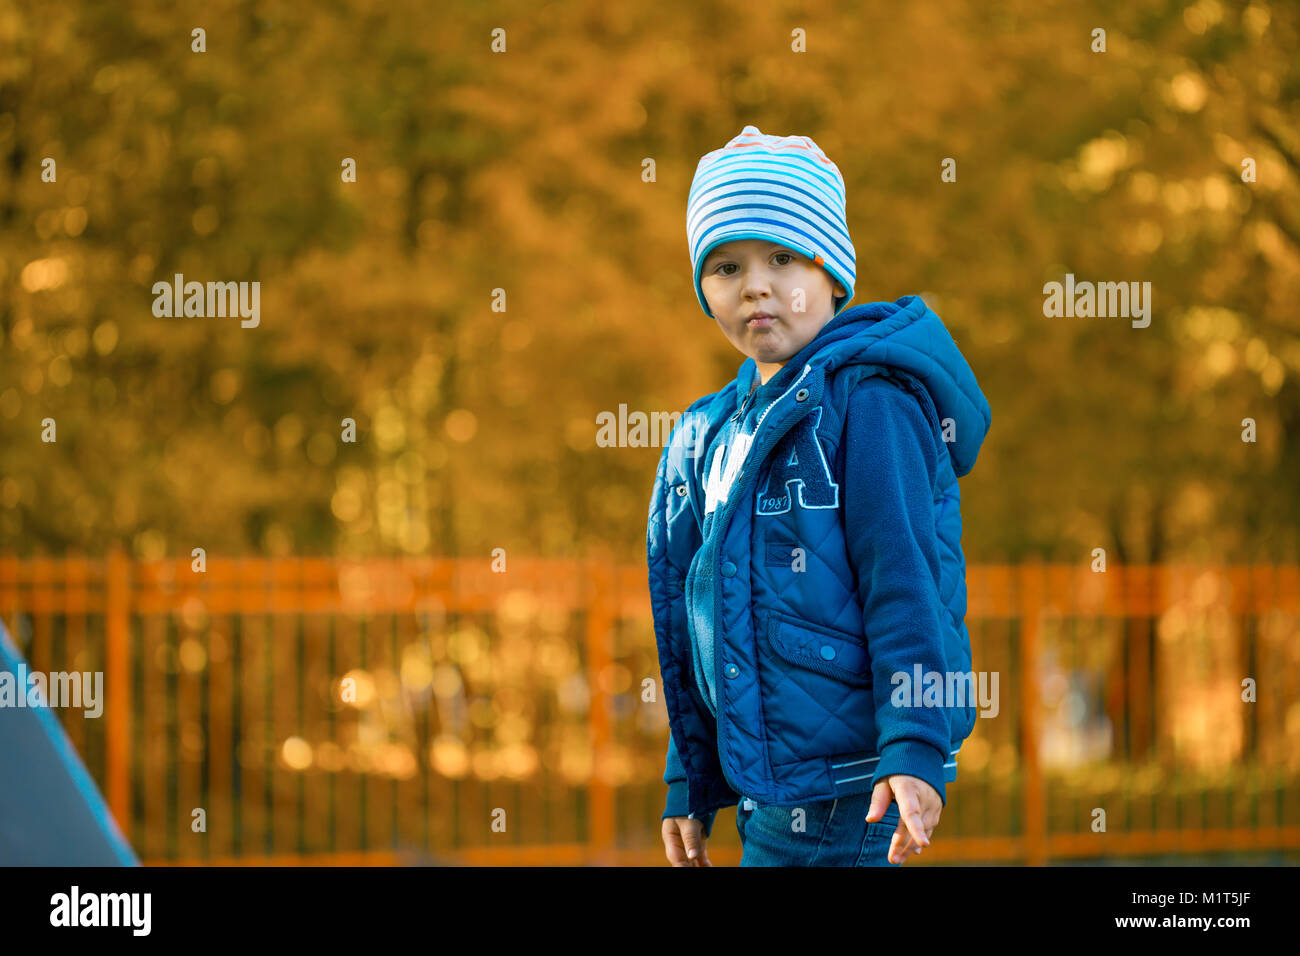 cute baby boy standing in autumn park - Stock Image